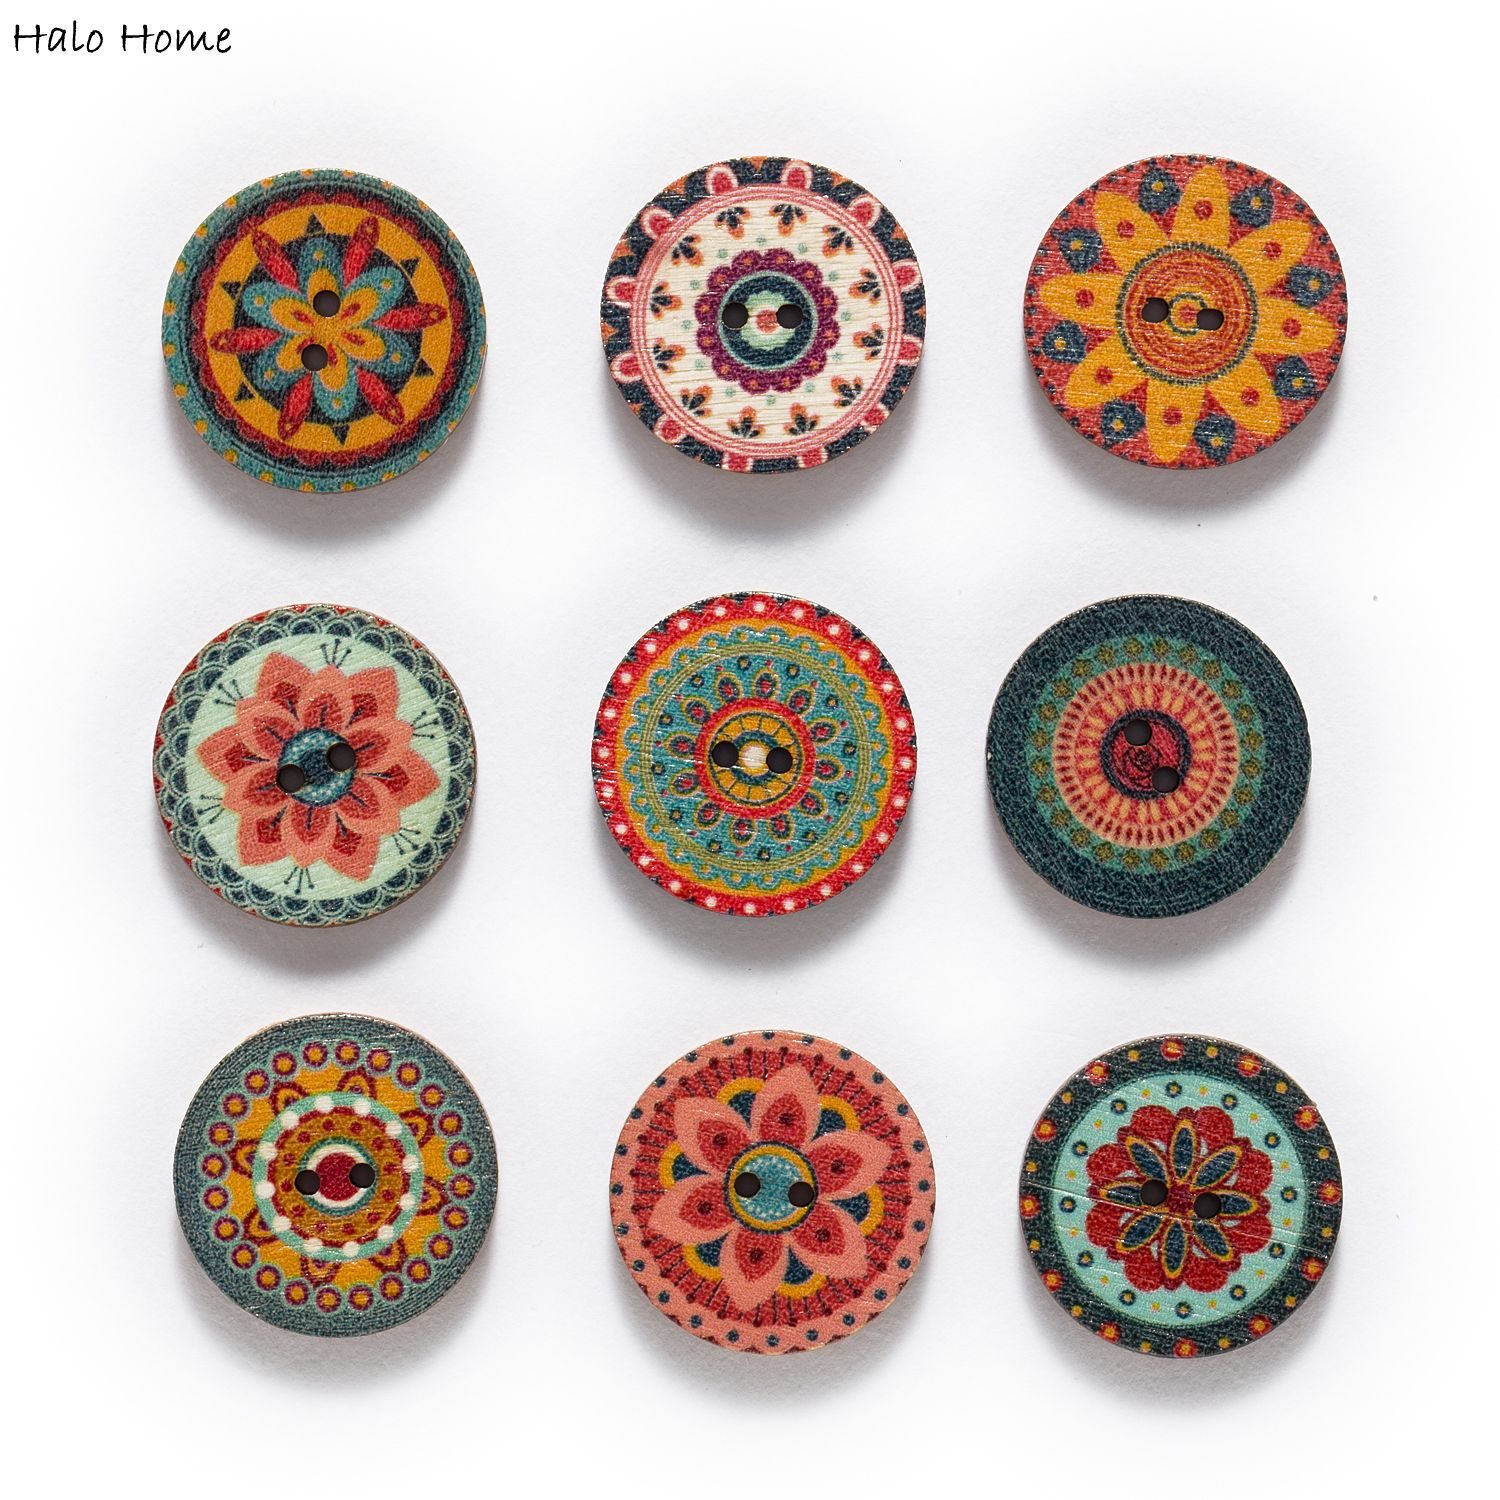 50pcs Retro series Wood Buttons for Handwork Sewing Scrapbook Clothing Crafts Accessories Gift Card Decor 20 50pcs Retro series Wood Buttons for Handwork Sewing Scrapbook Clothing Crafts Accessories Gift Card Decor 20-25mm